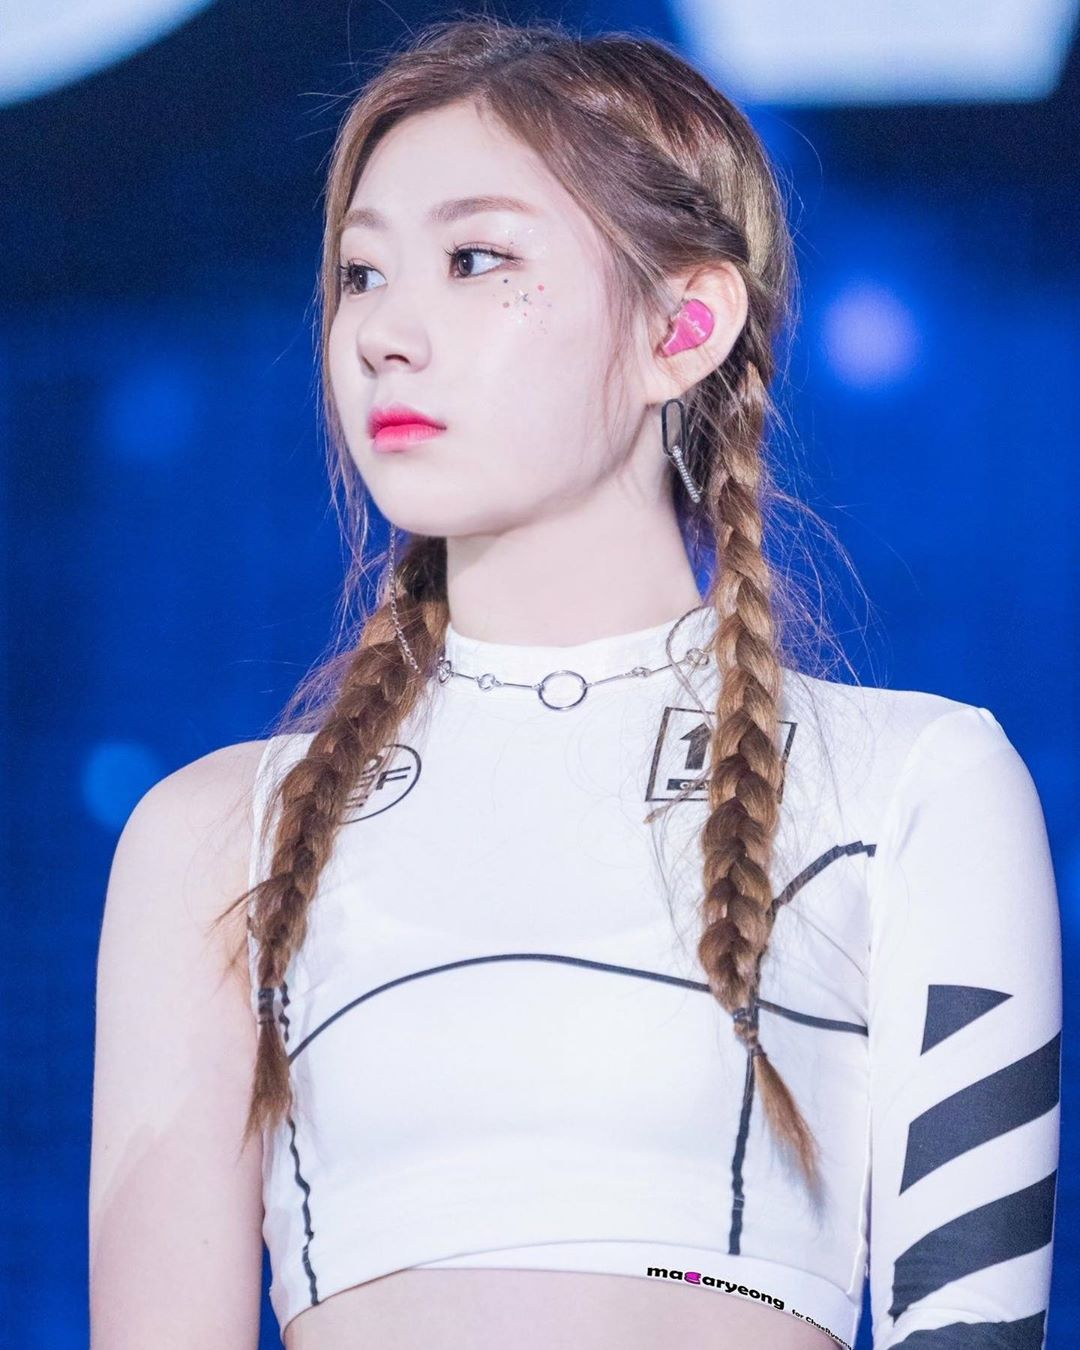 Guys Really This Girl Does Not Stop Being Perfect Never Stop Being So Unique Itzy Chaeryeong Lia Ryujin Yeji Yuna Icy Itzy Hairstyle Hair Styles